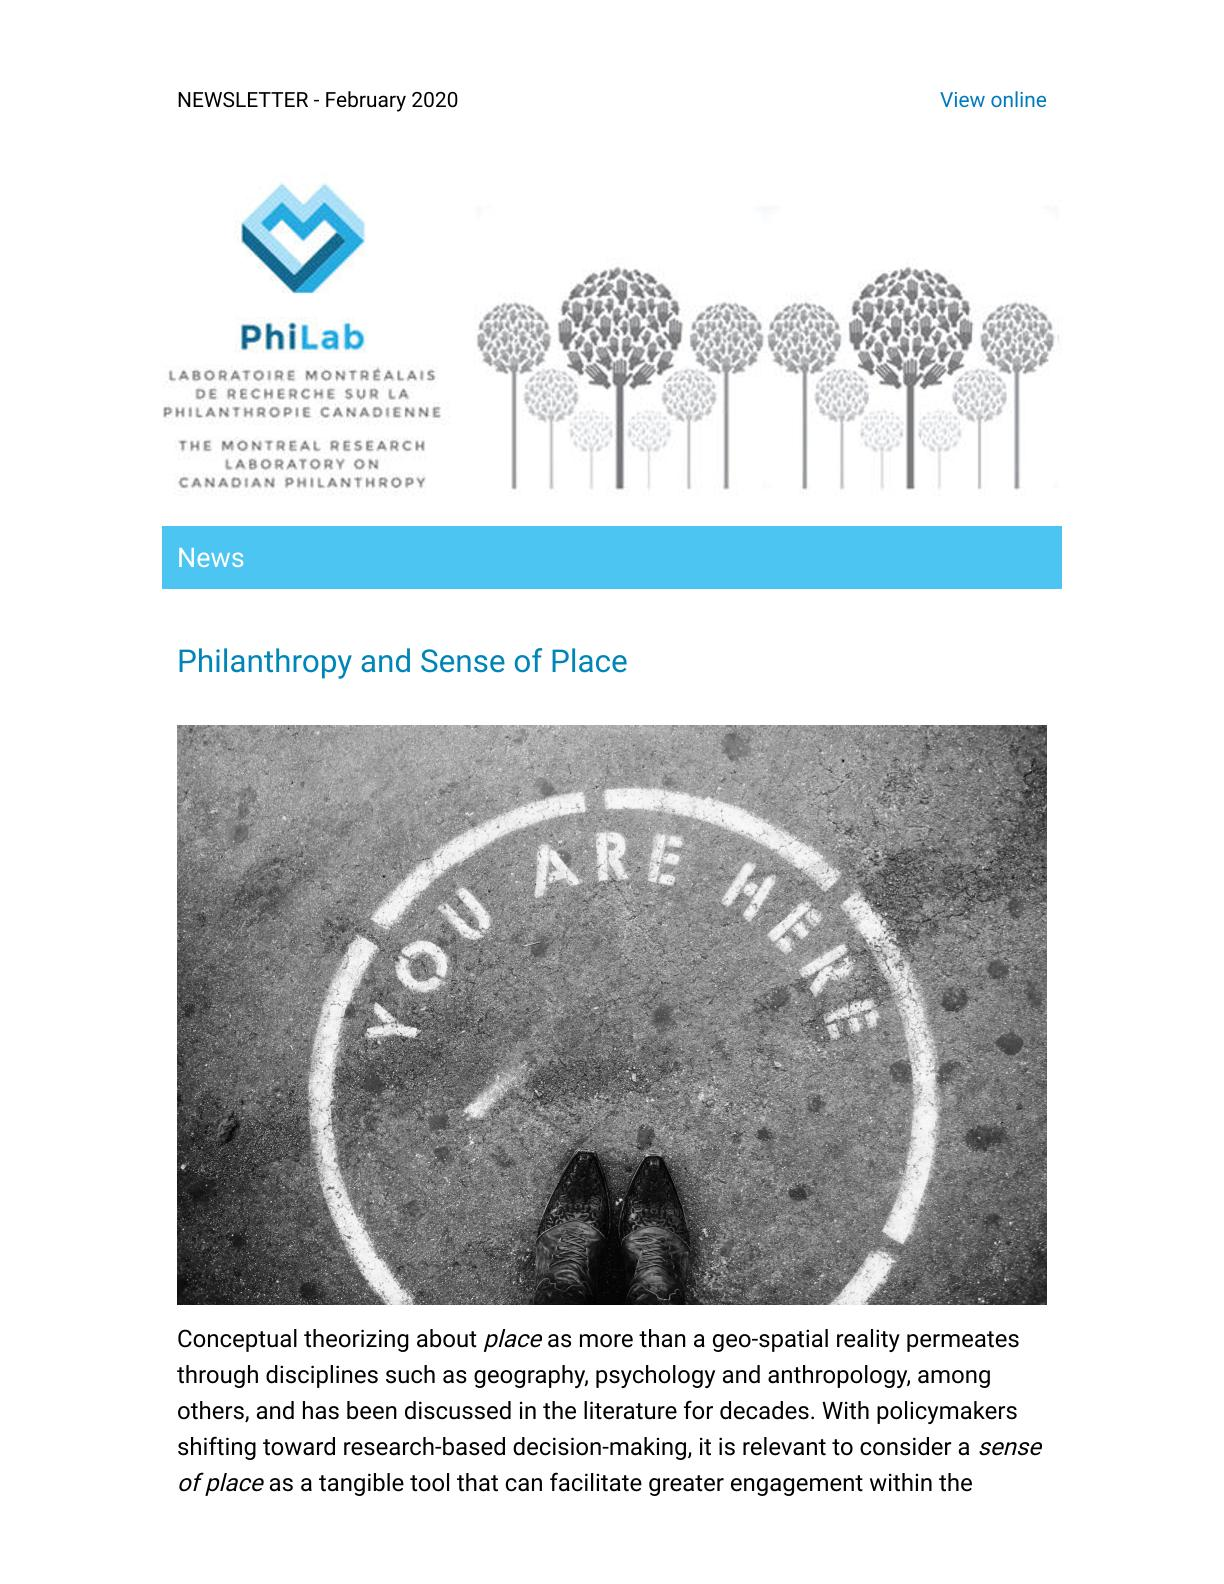 Philanthropy and Sense of Place